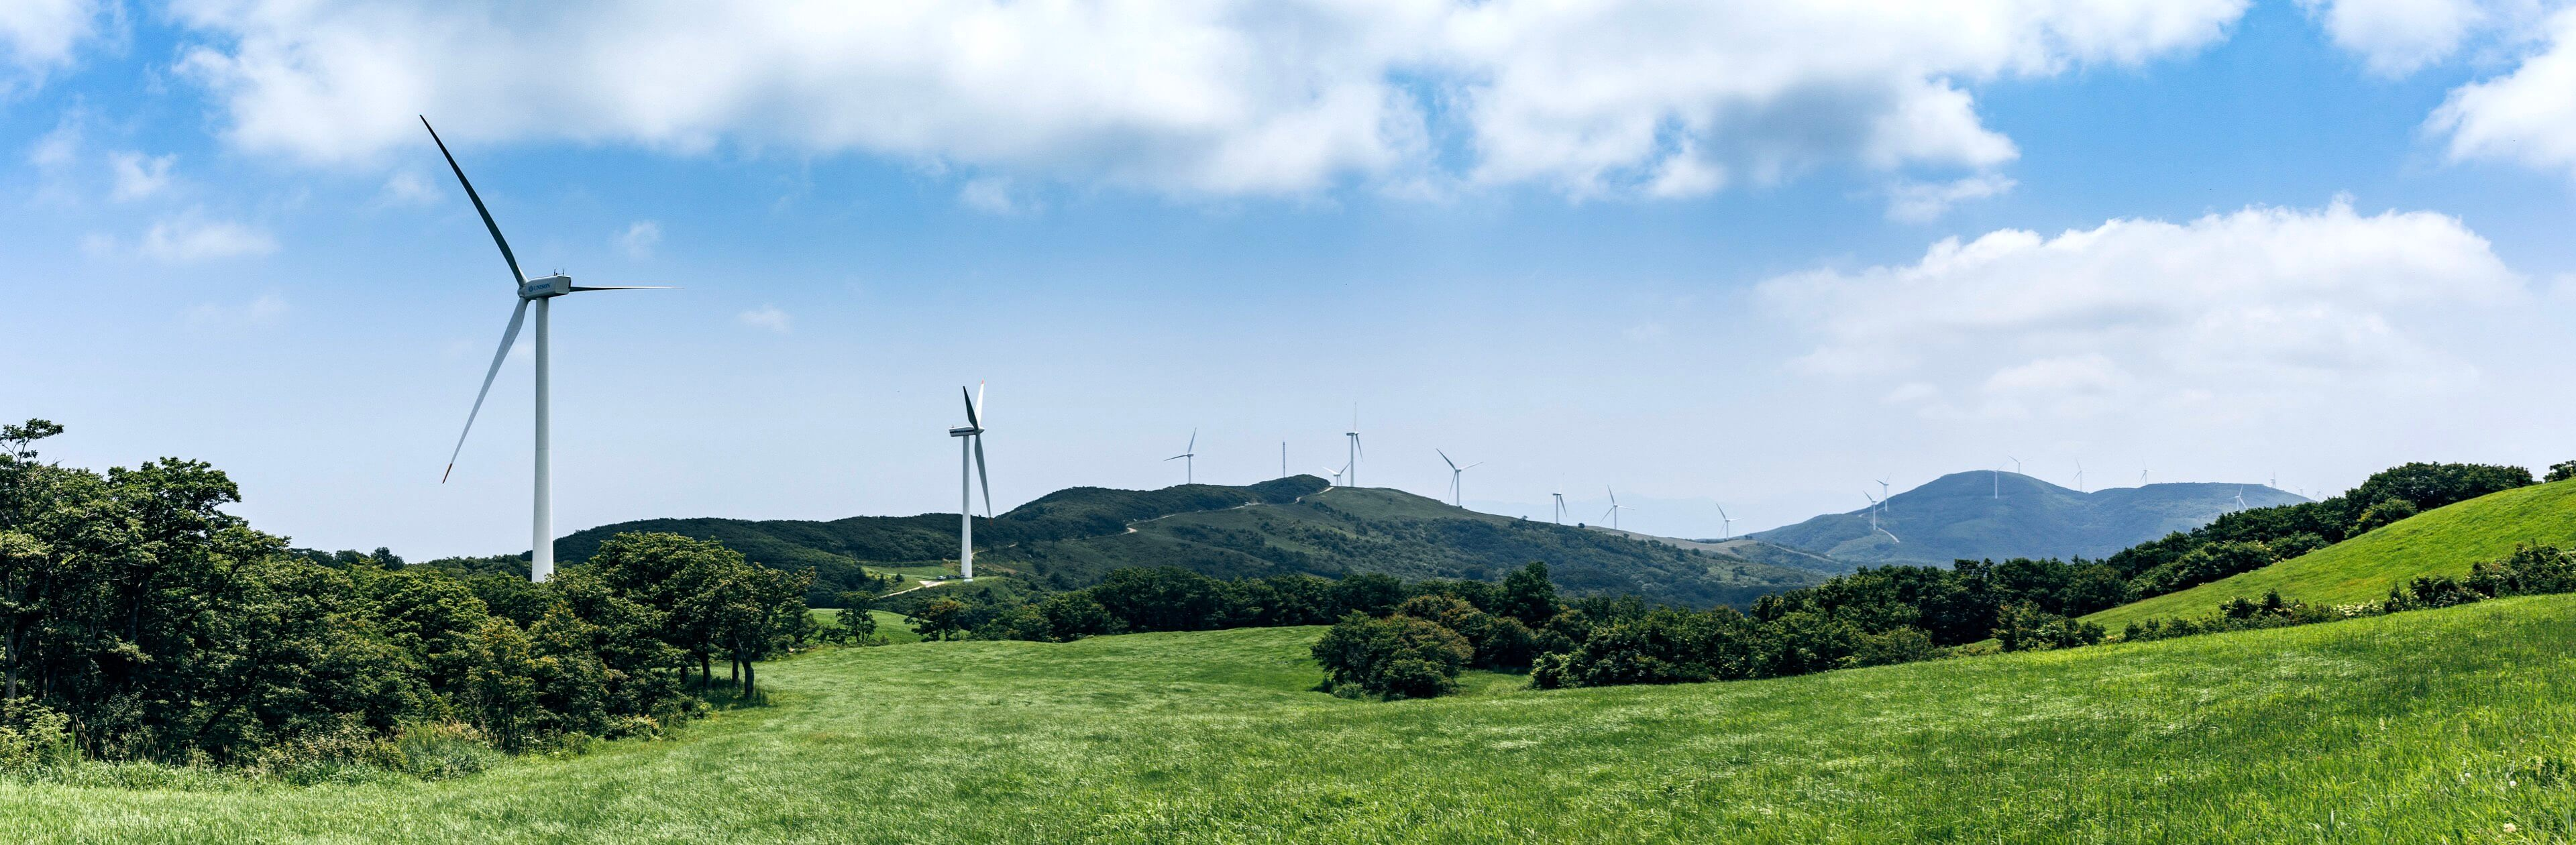 Rolling hills with wind turbines scattered throughout